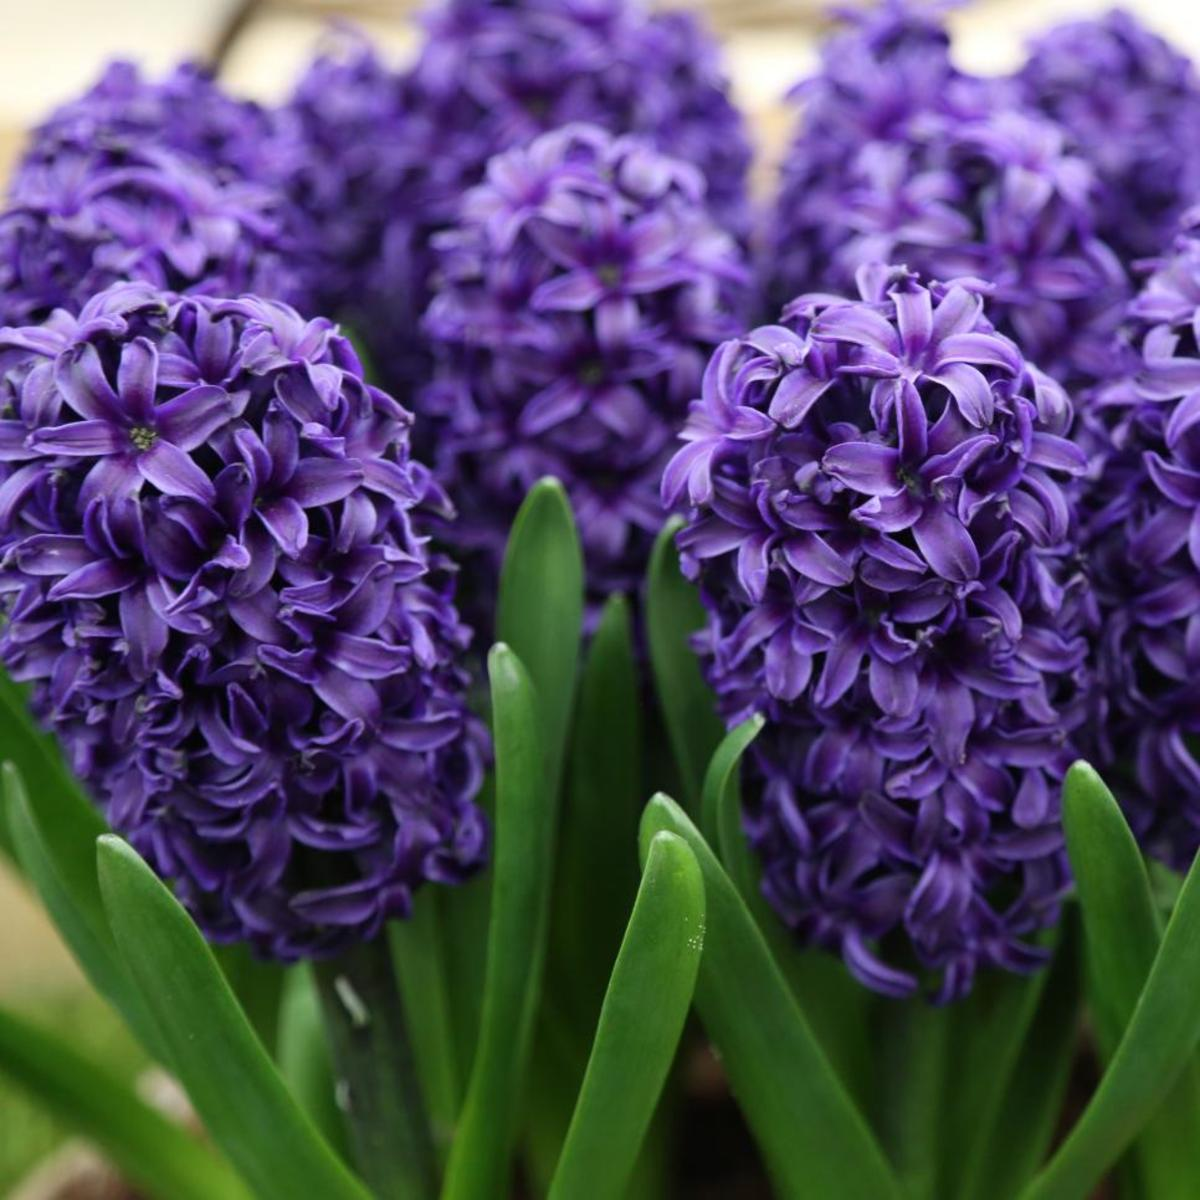 Hyacinths are perennials, so you can plant them once and they'll come back every spring. Hyacinths are easier to grow than other spring bulbs.